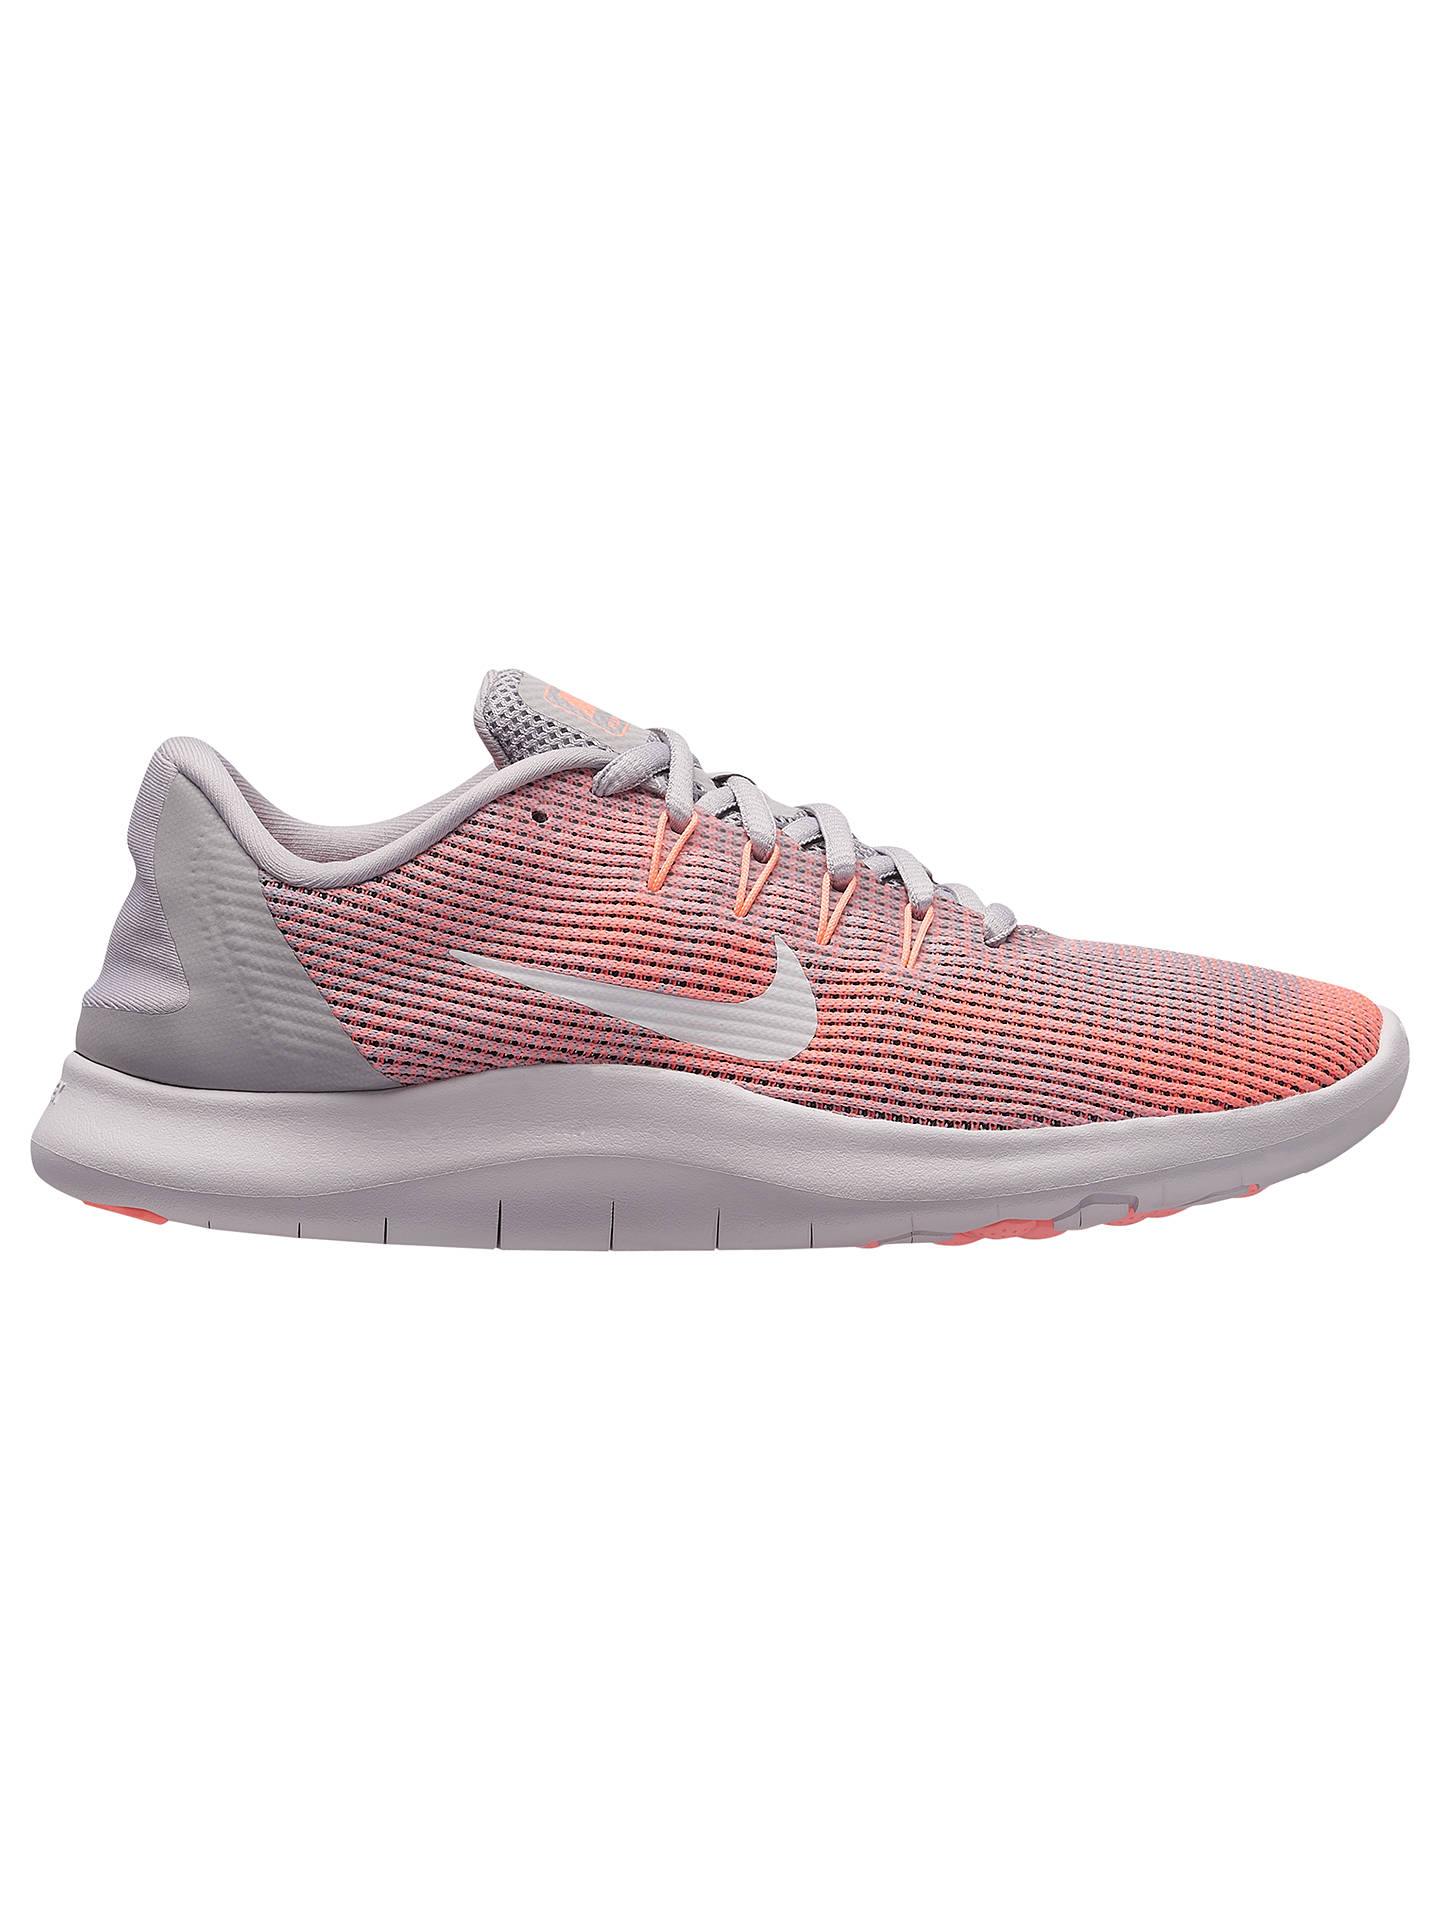 2da93a0ce463 Buy Nike Flex RN 2018 Women s Running Shoe